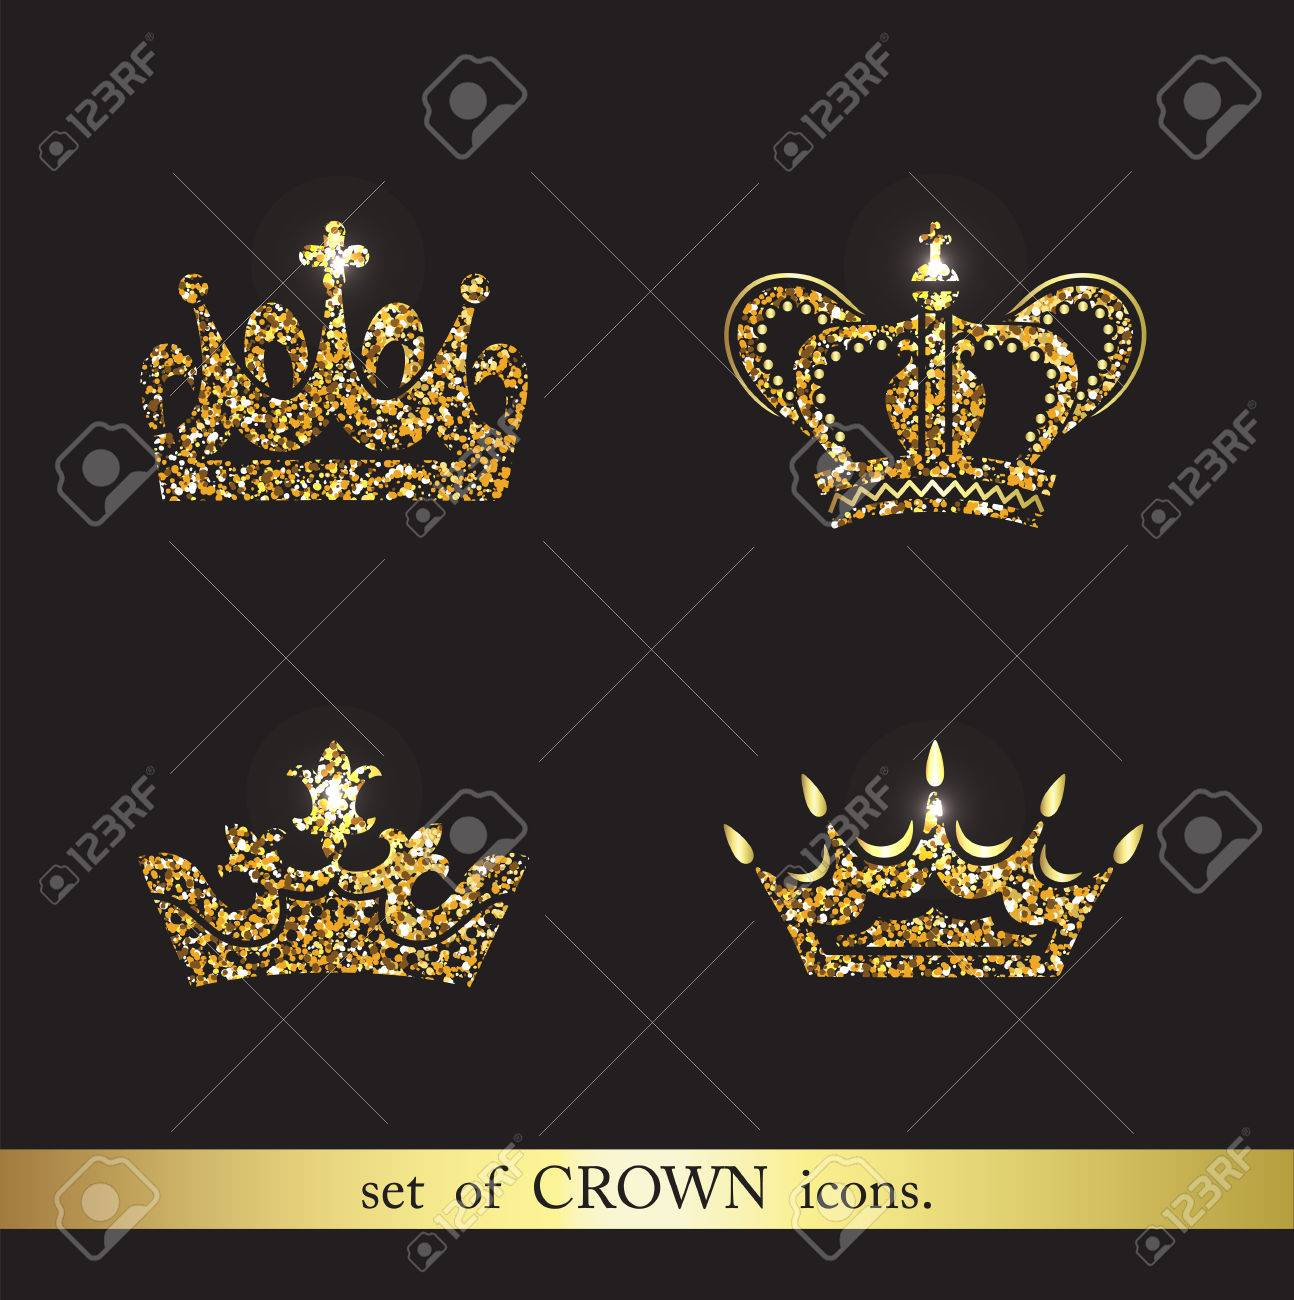 set of vector gold crown icons logo royal design elements stock